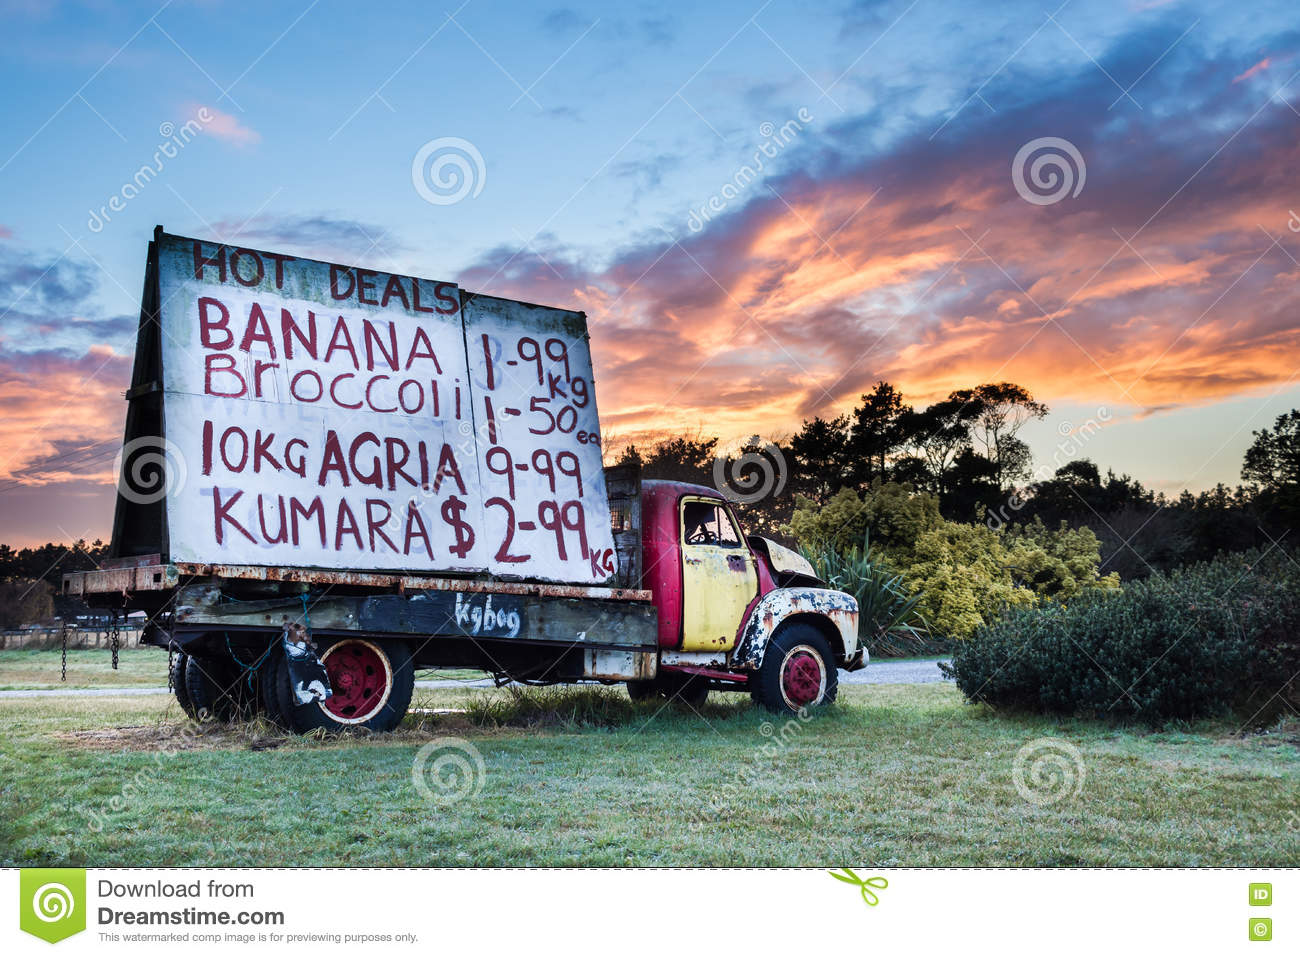 Truck Signage stock image. Image of price, scale, truck - 73869941